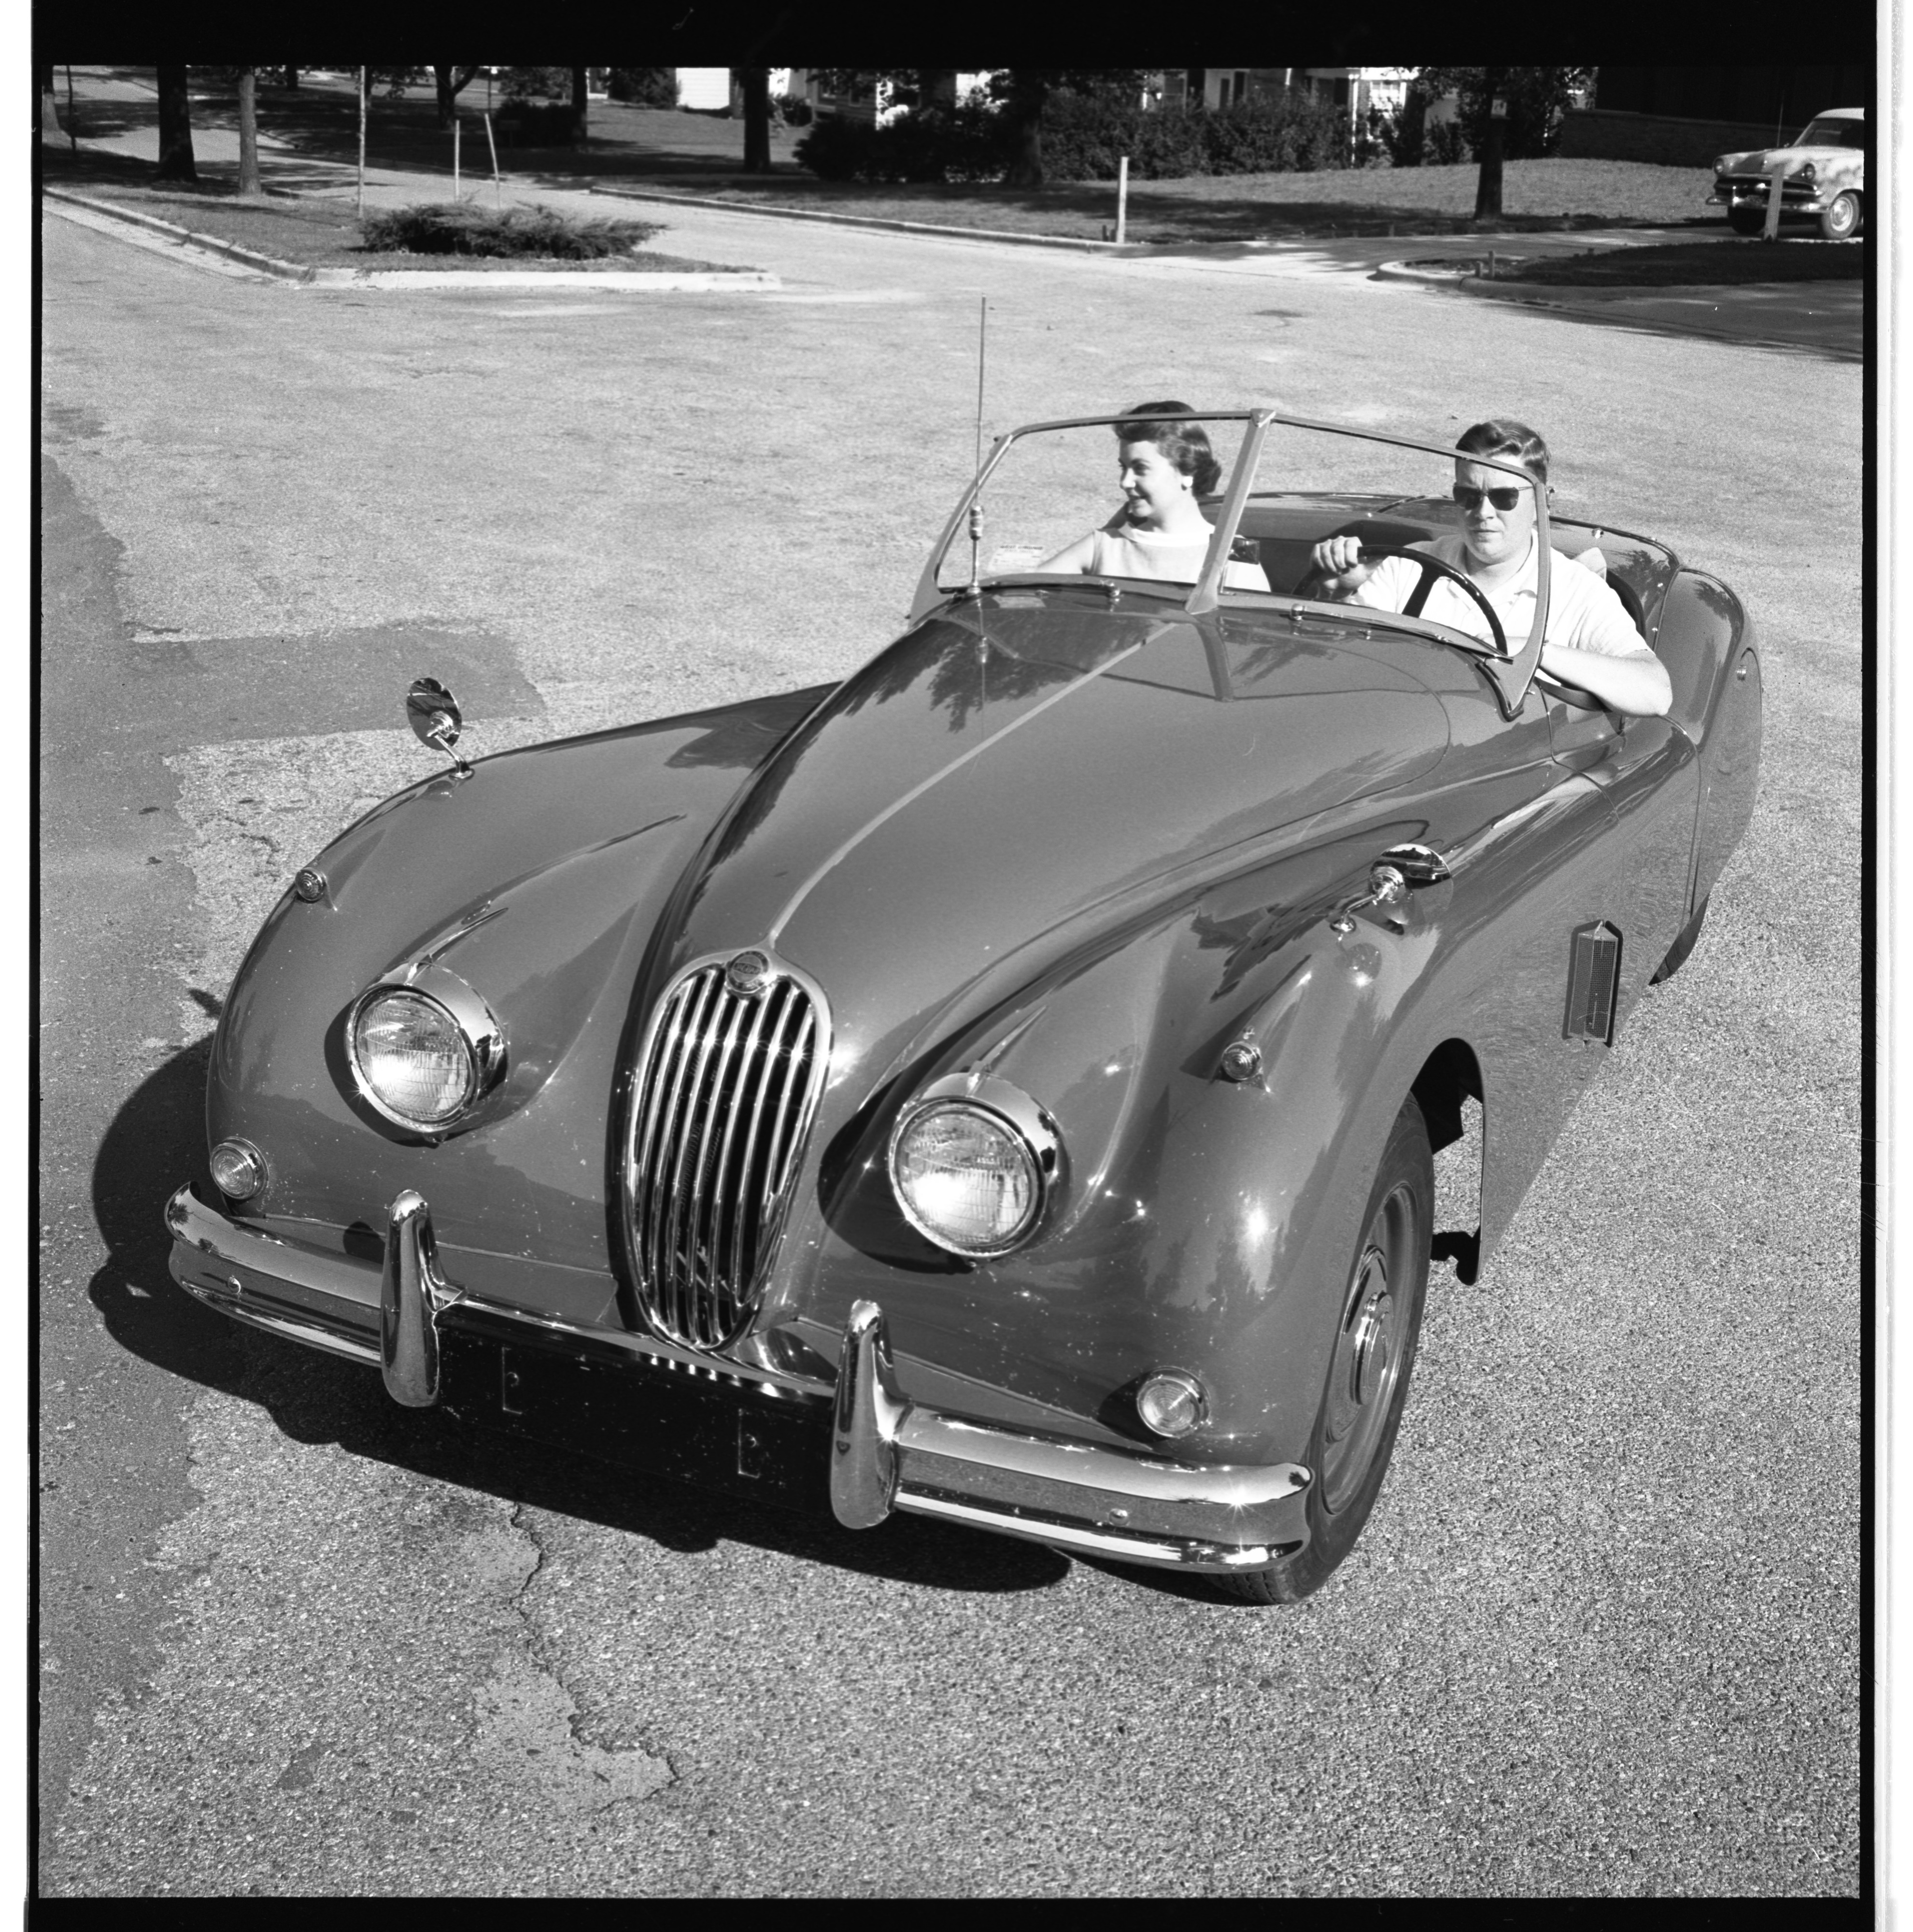 Mr. and Mrs. William T. Callaghan in their Jaguar, August 1957 image